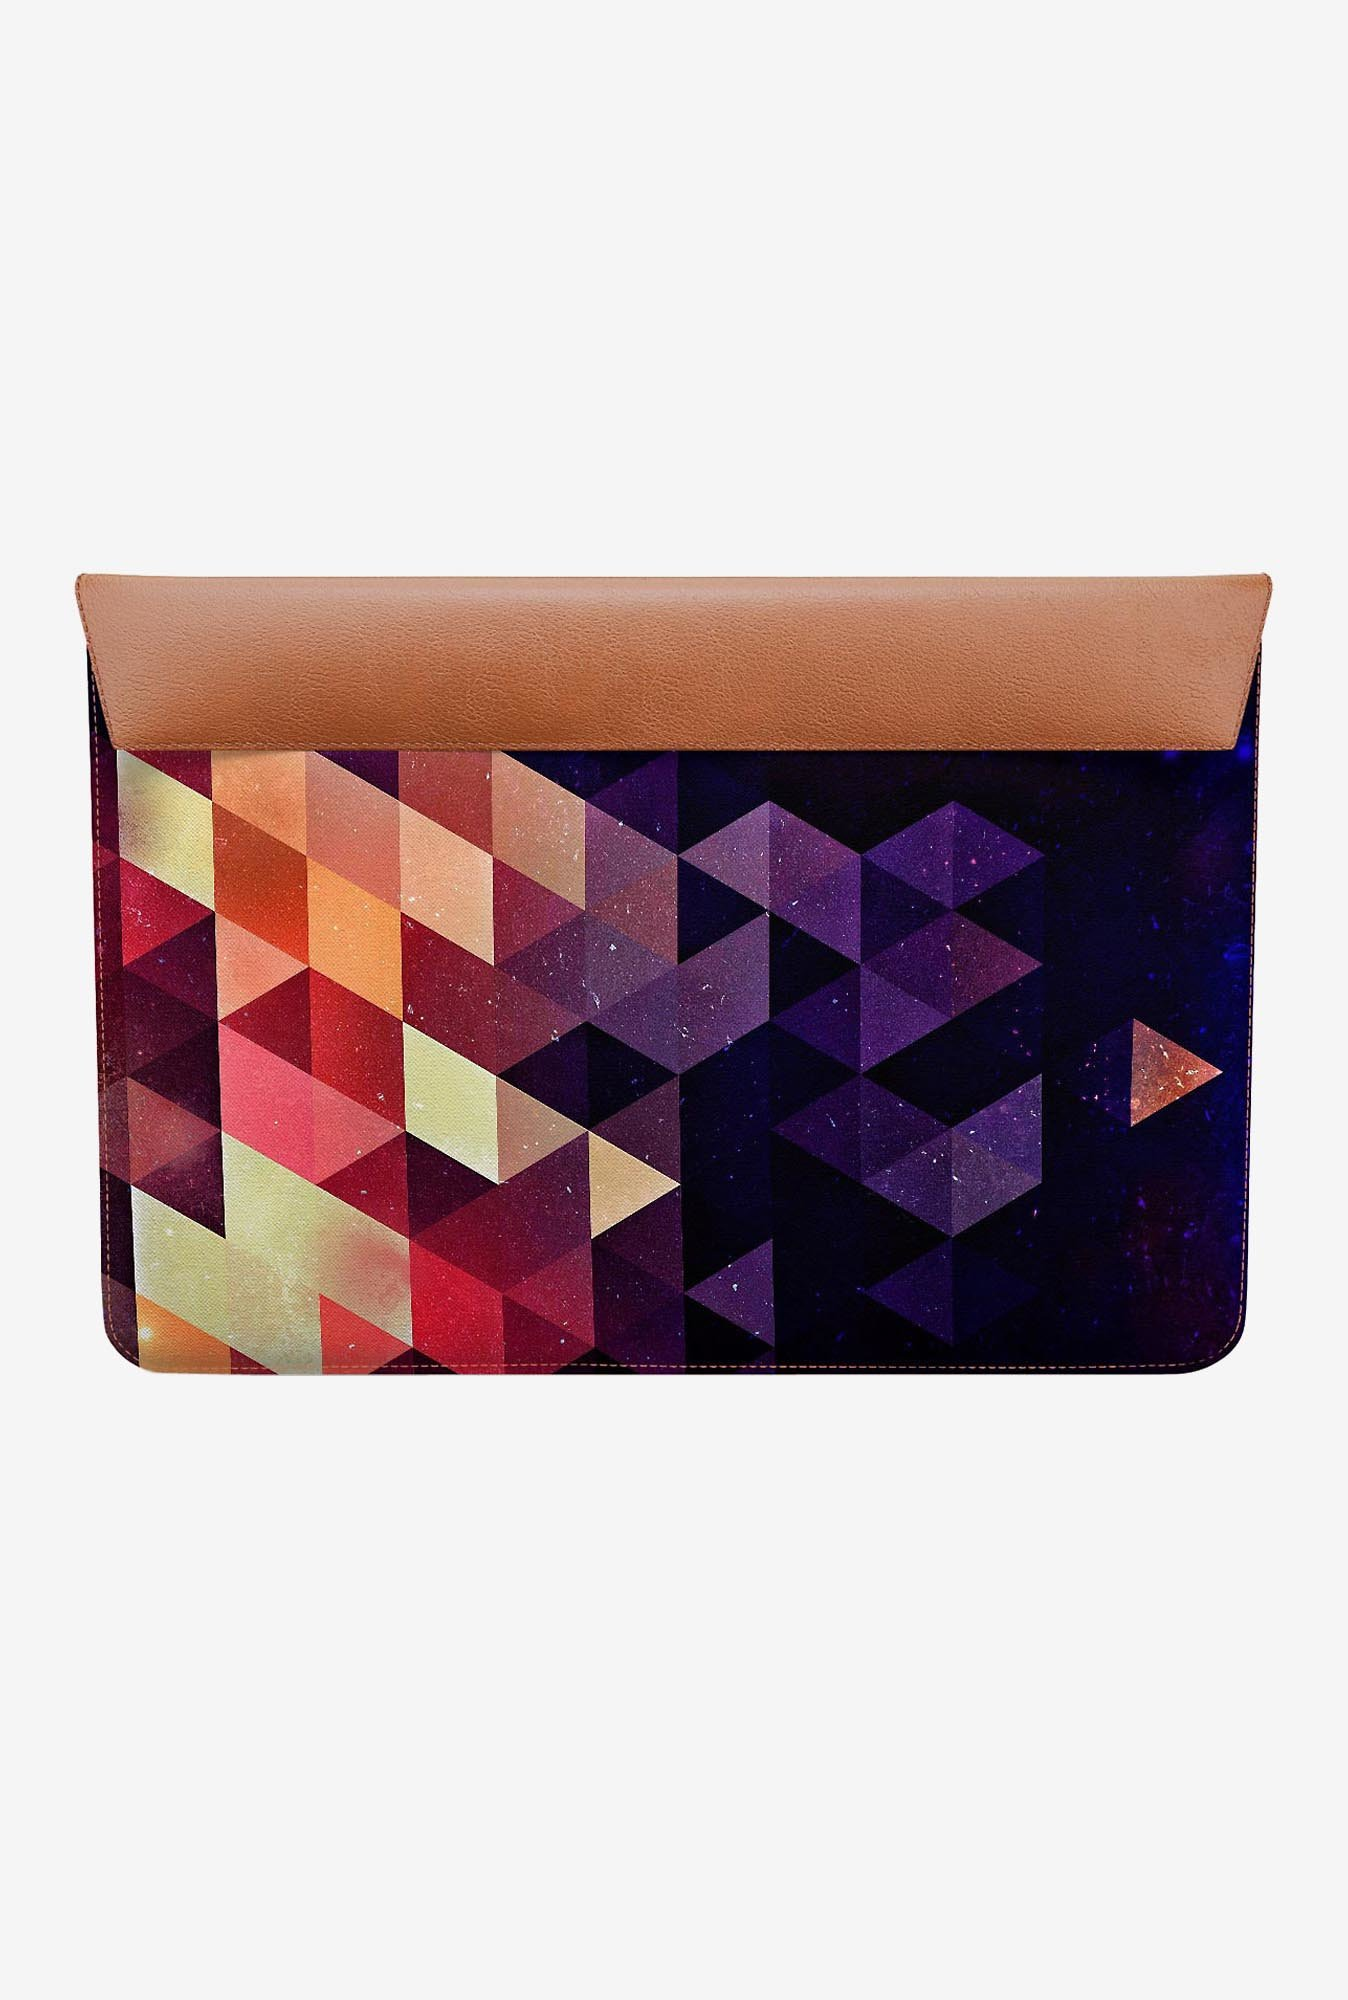 DailyObjects Th tymplll MacBook Air 11 Envelope Sleeve